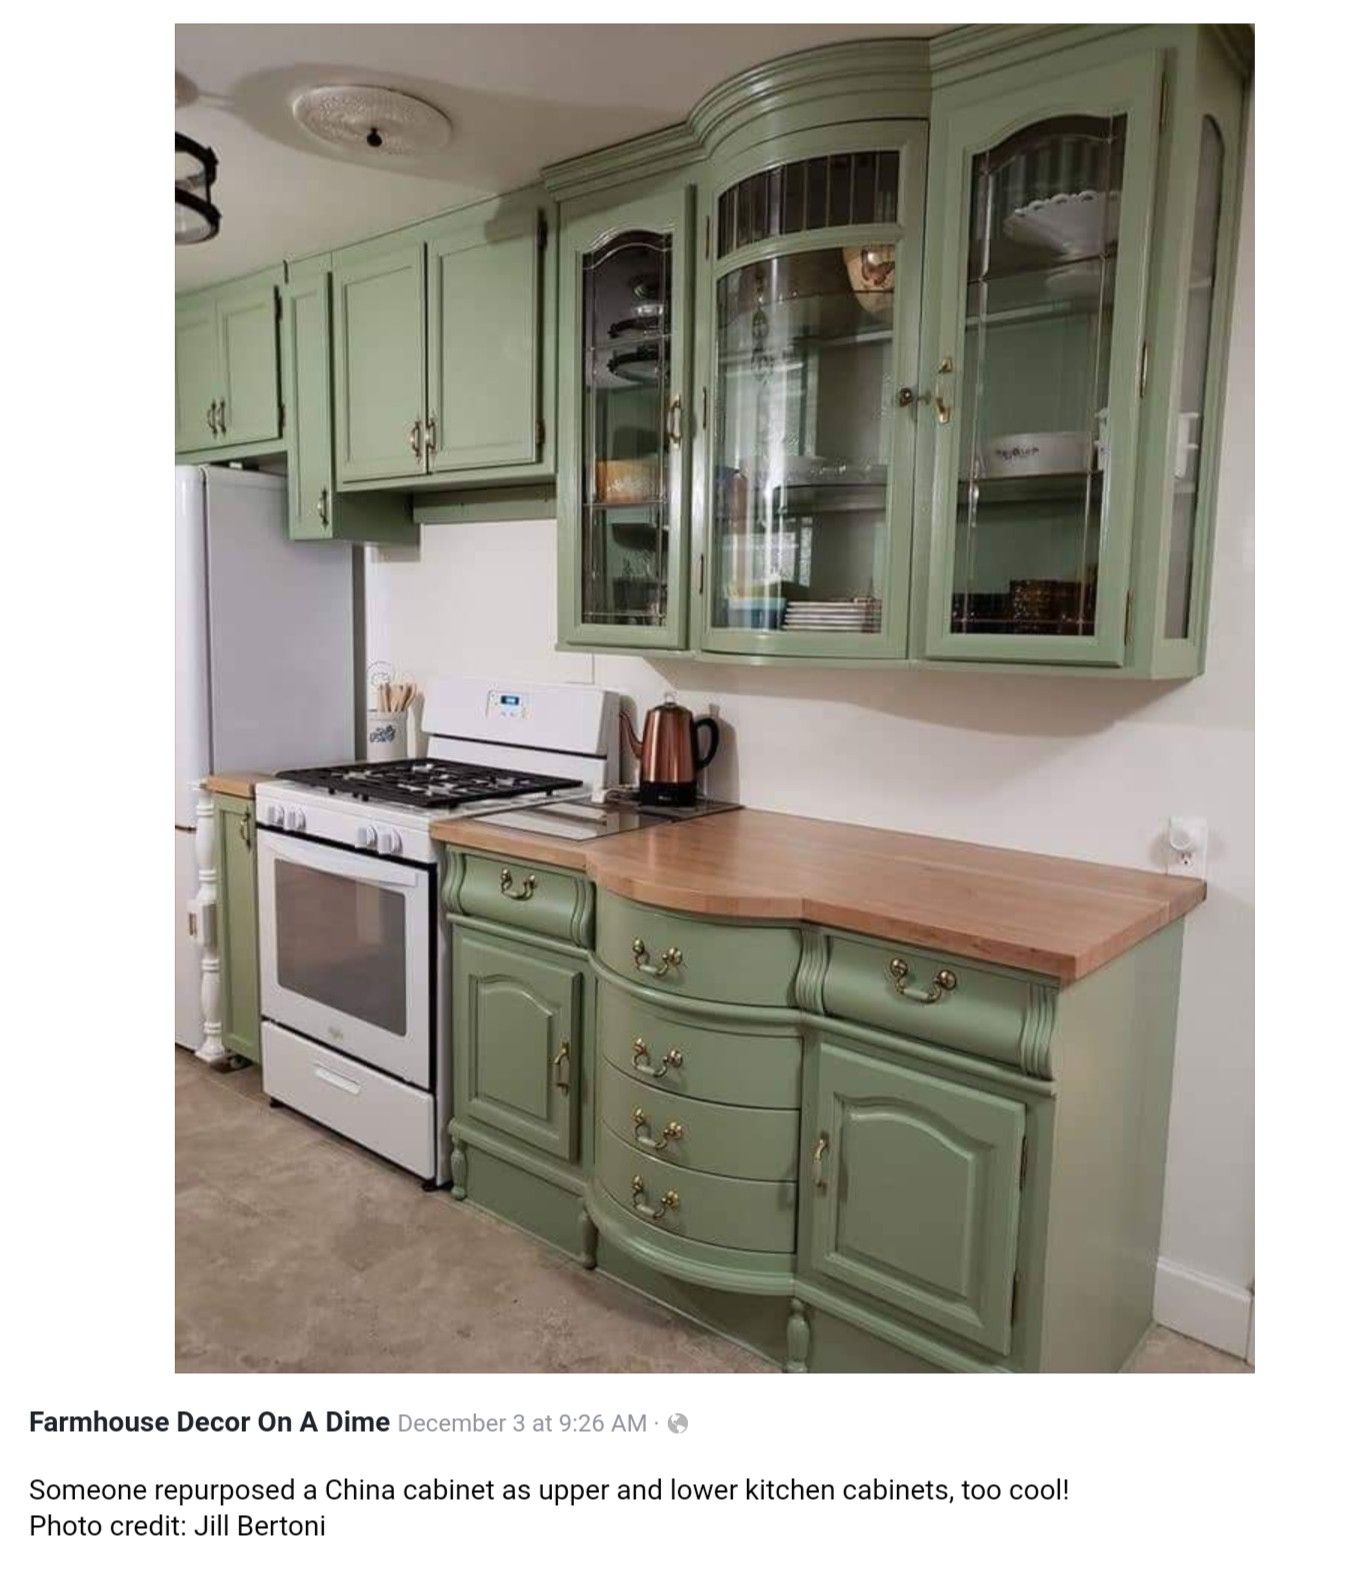 Pin By Makingmorebeauty On Kitchen Pantry Cellar In 2020 Upper Kitchen Cabinets Repurposed Kitchen Repurposed China Cabinet